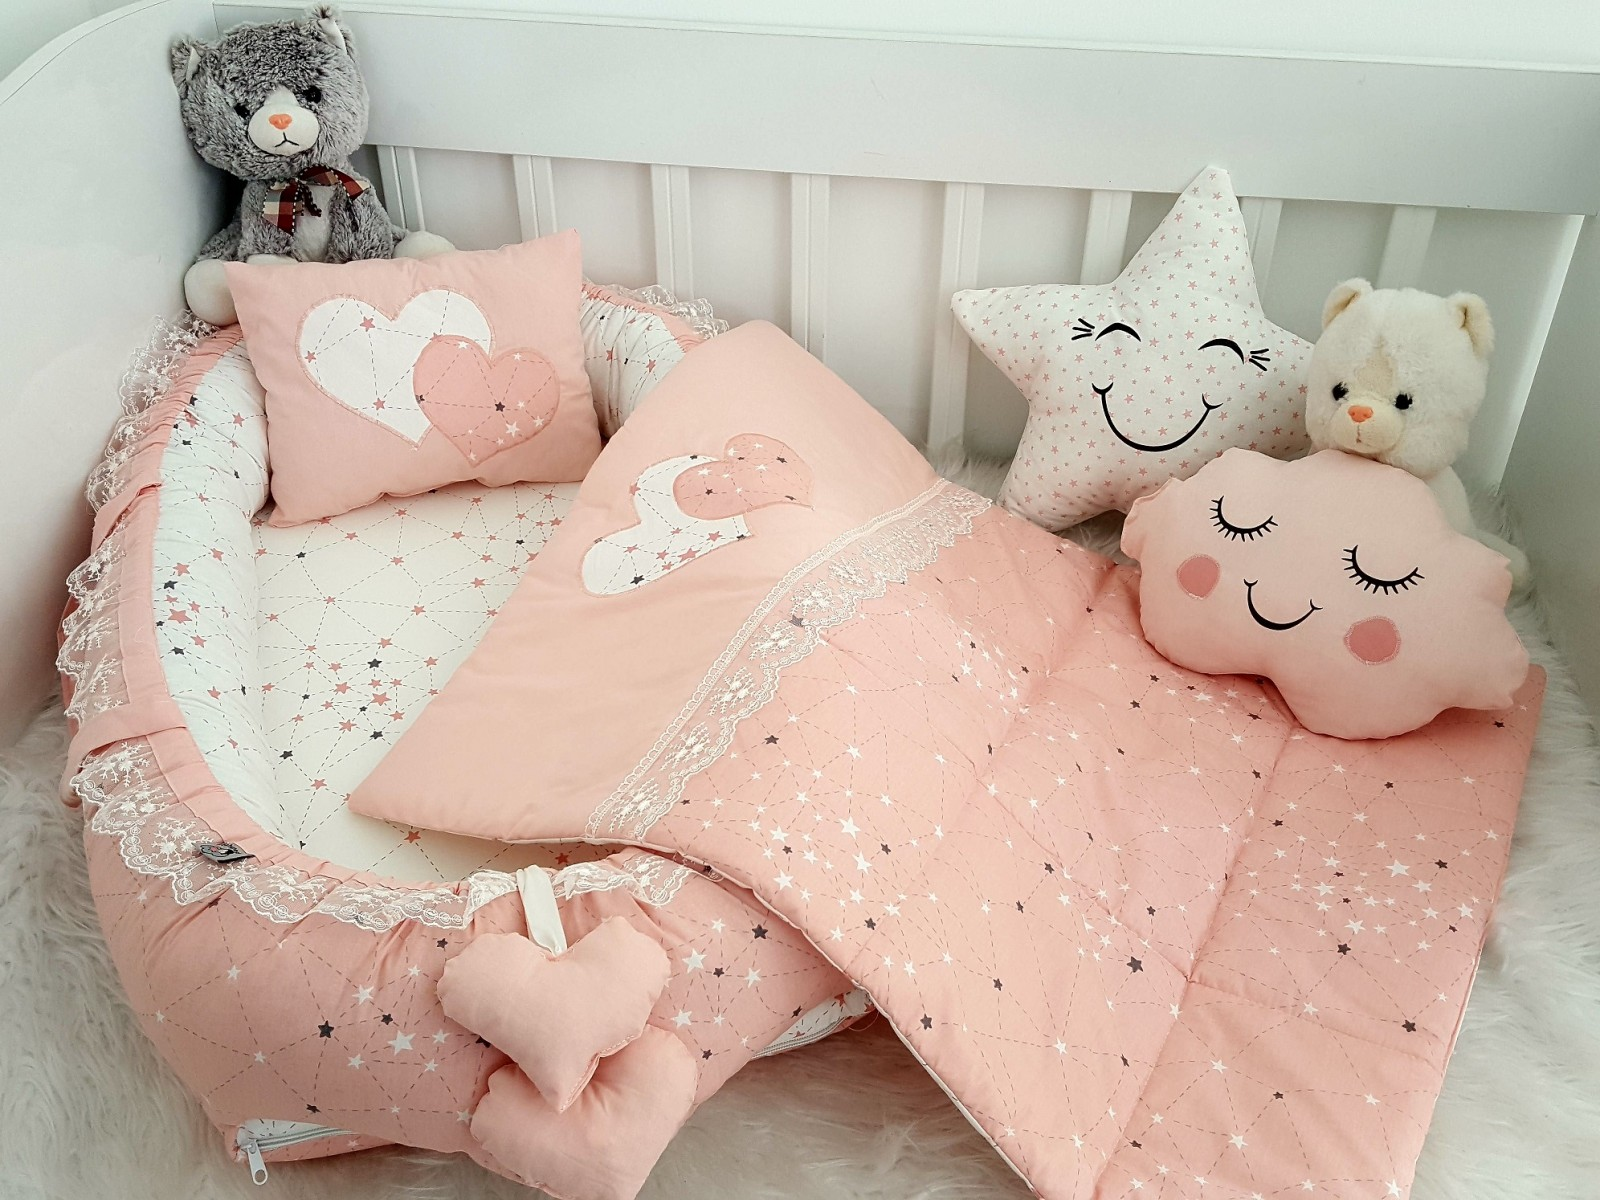 Galaxy Series Powder Babynest Set Heart Design v1